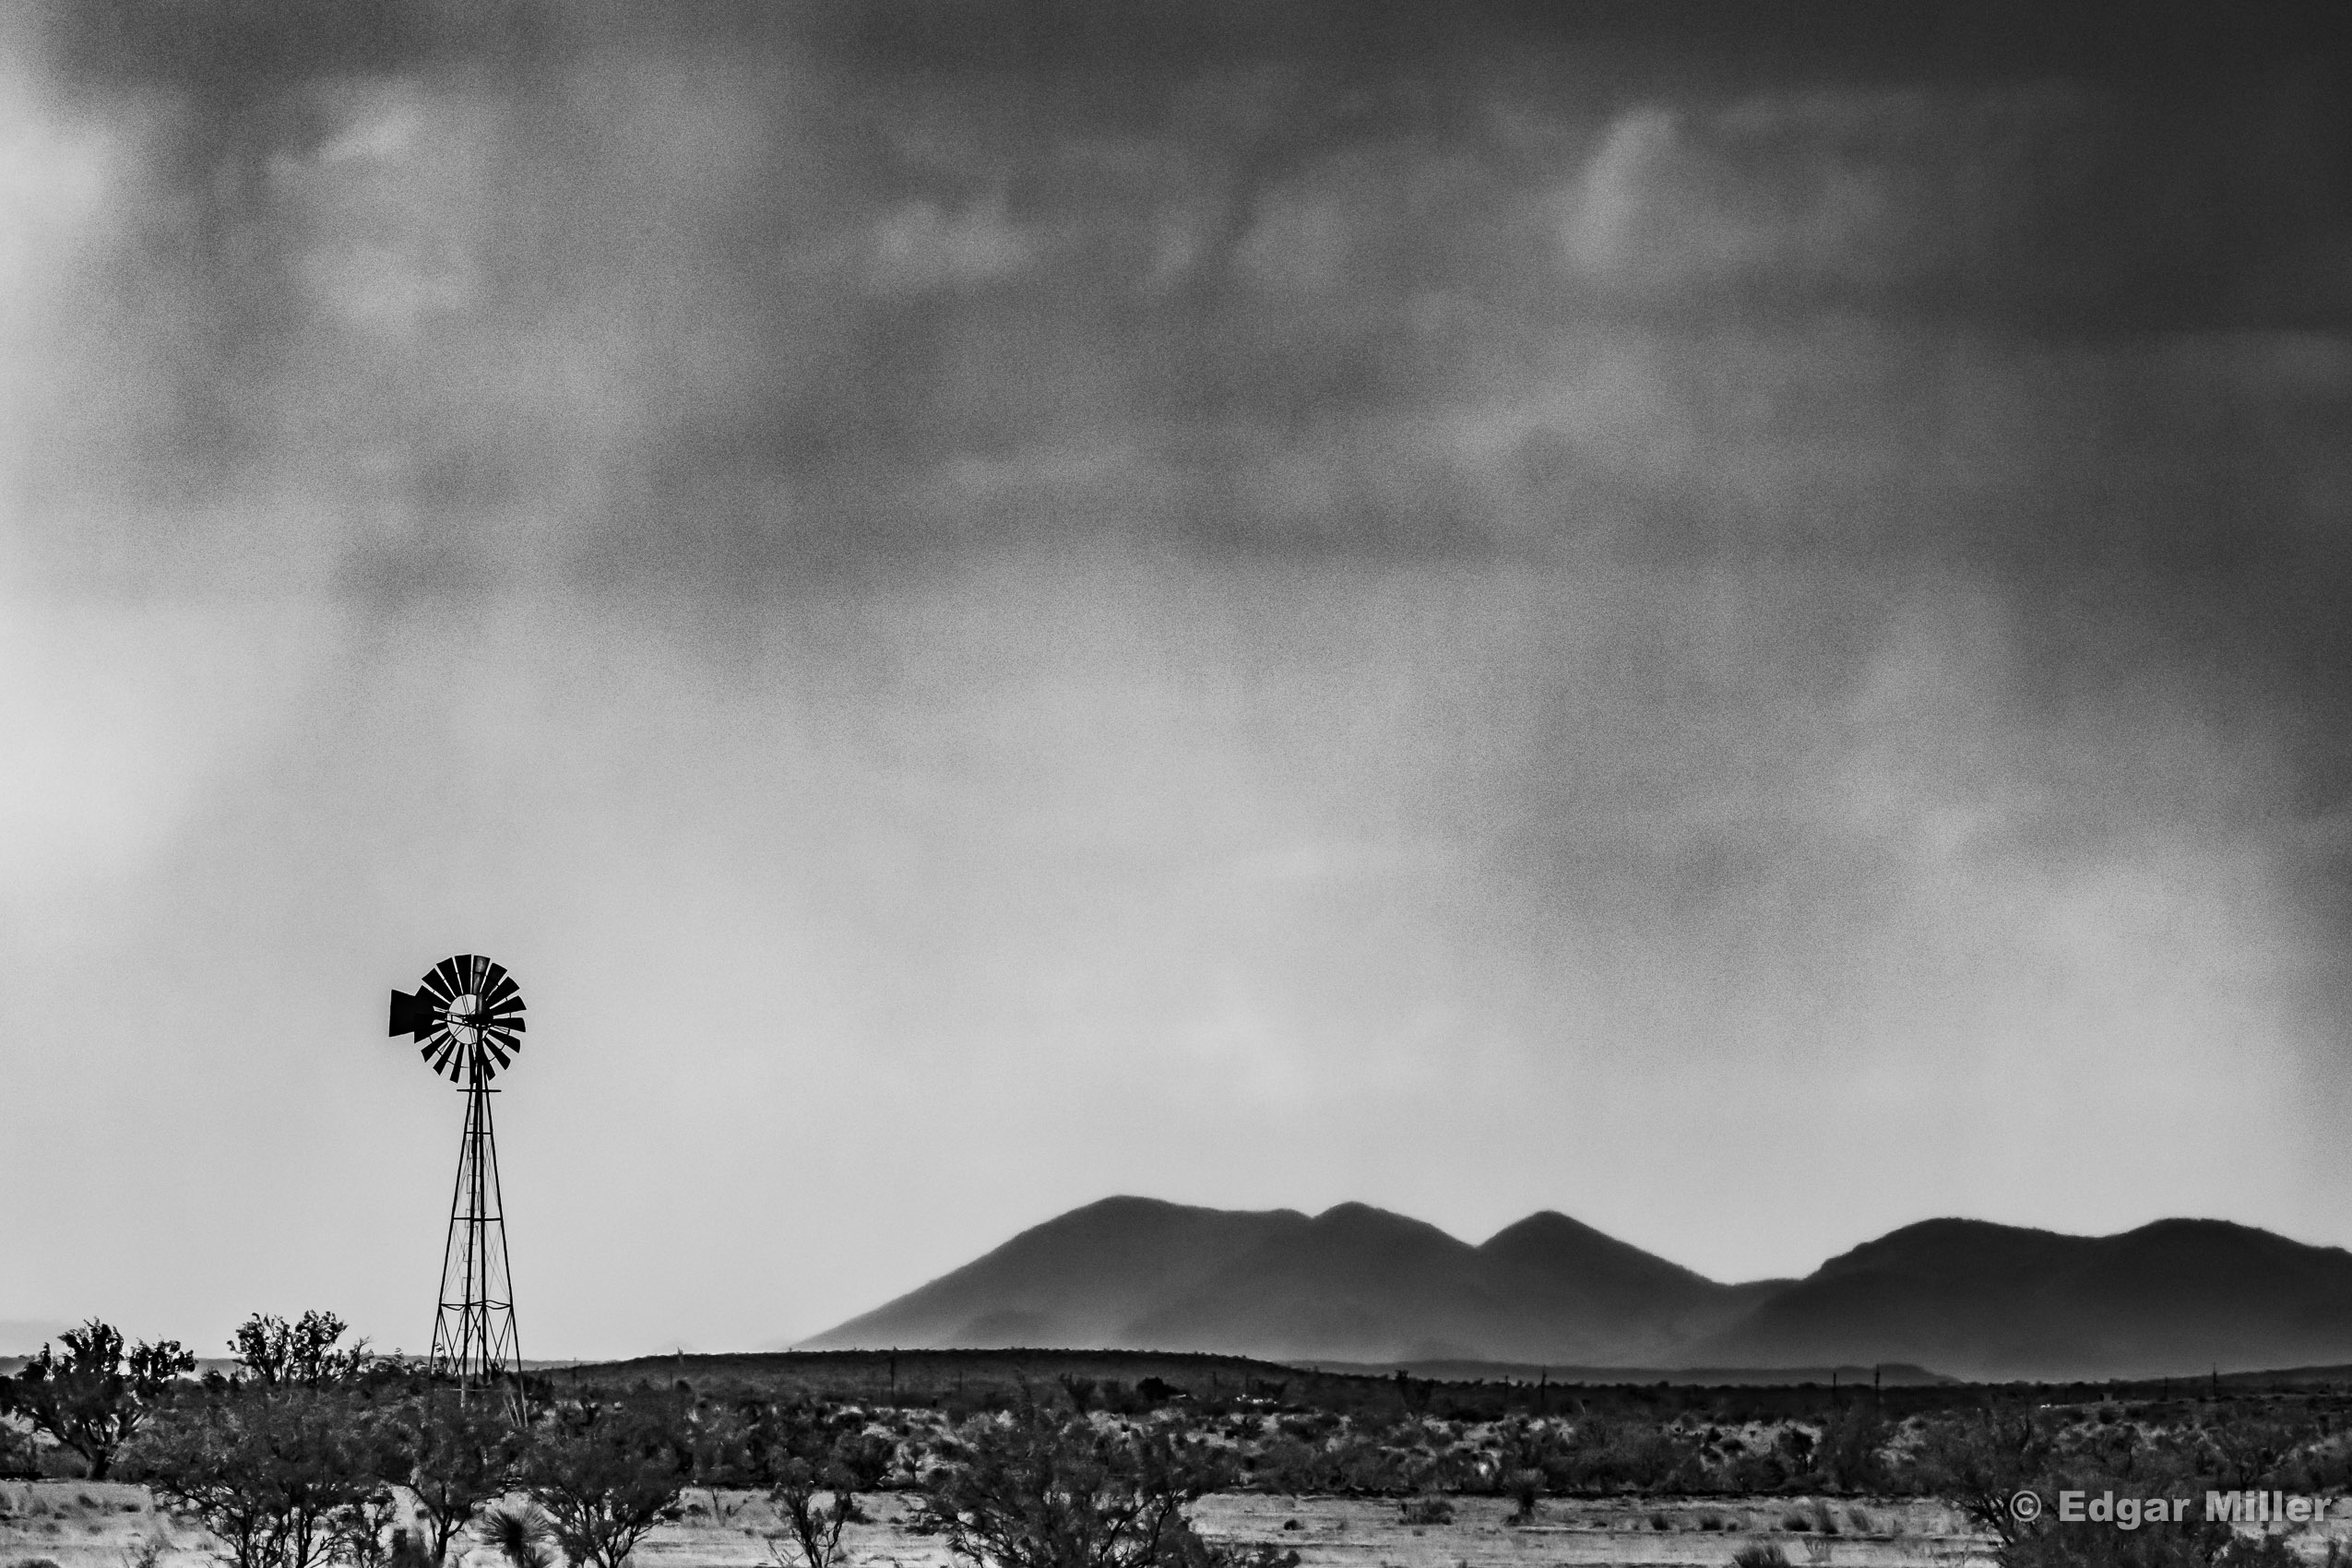 Rain, Windmill & Mountains, West Texas